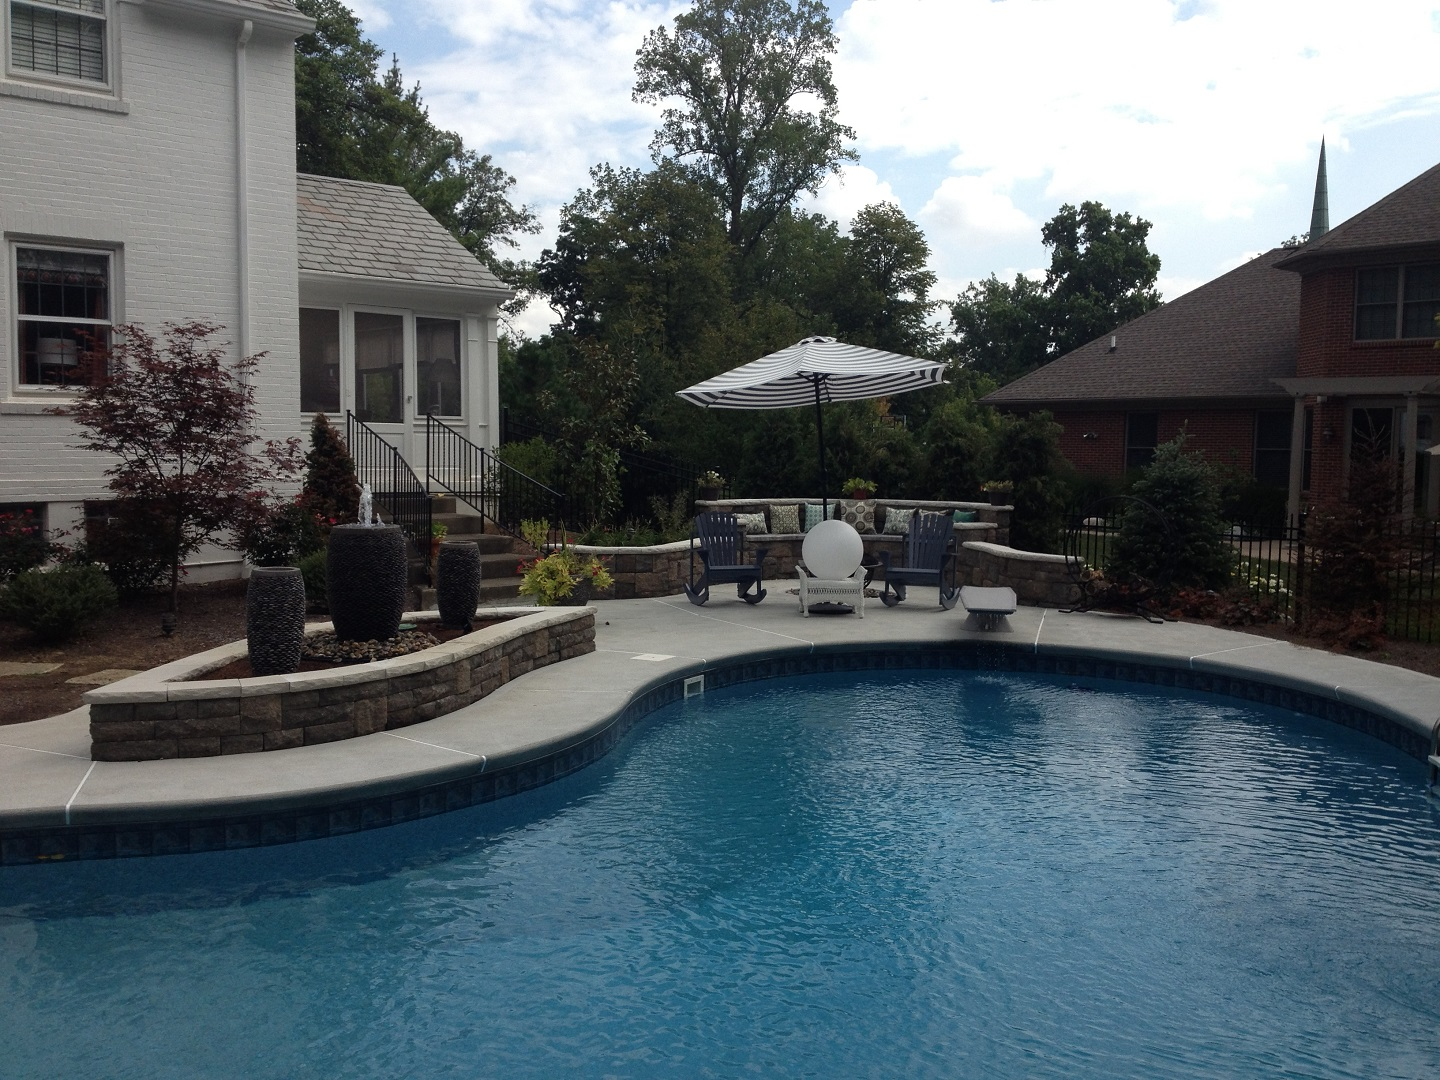 Backyard and installation in West Chester, OH